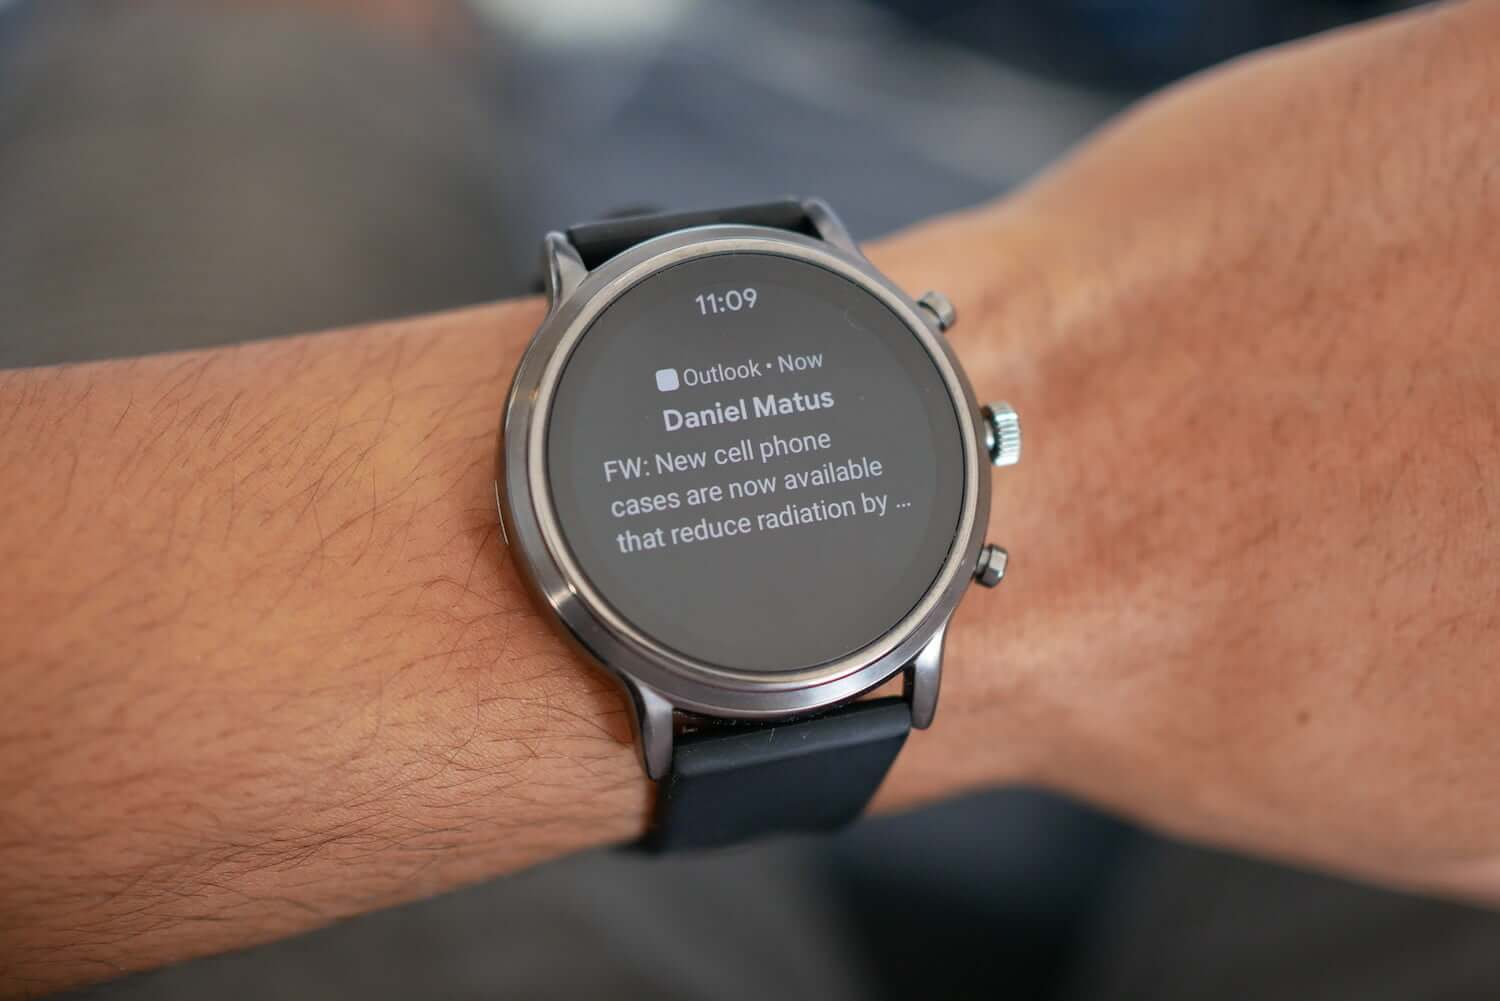 How to Set Up Fossil Smartwatch using Wear OS App